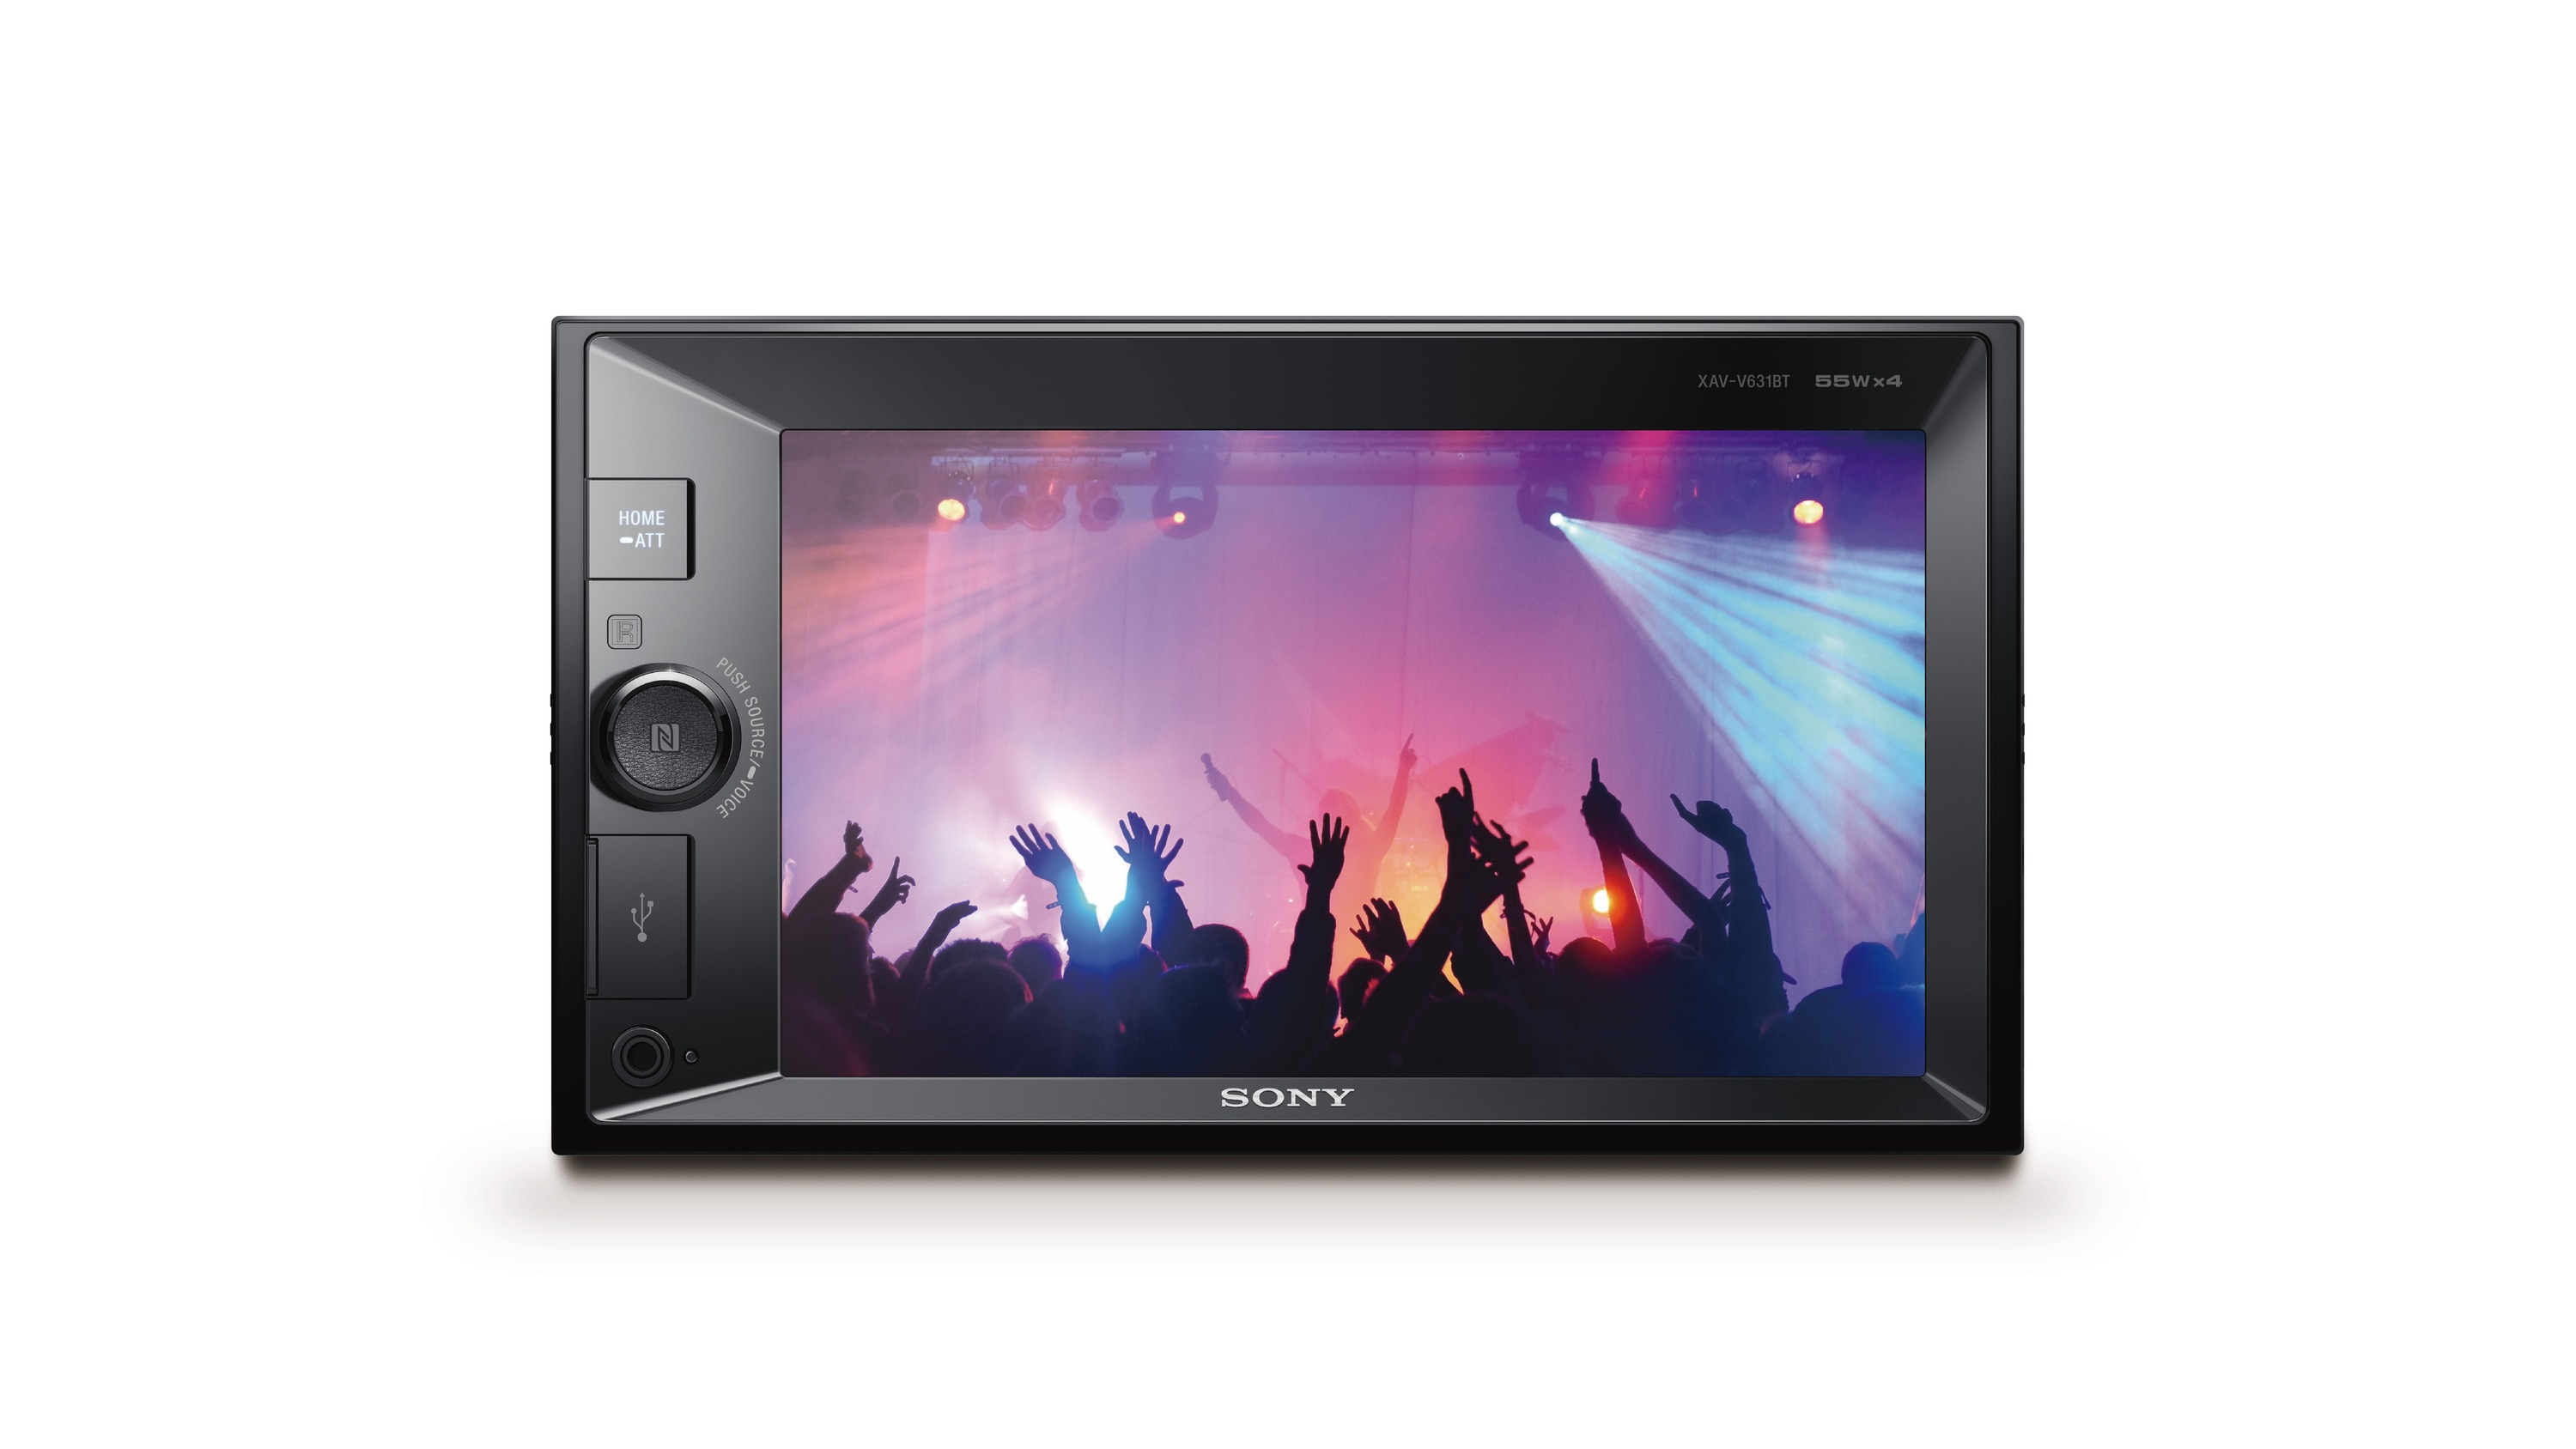 Sony autorádio XAV-631BT dot. display BT/NFC